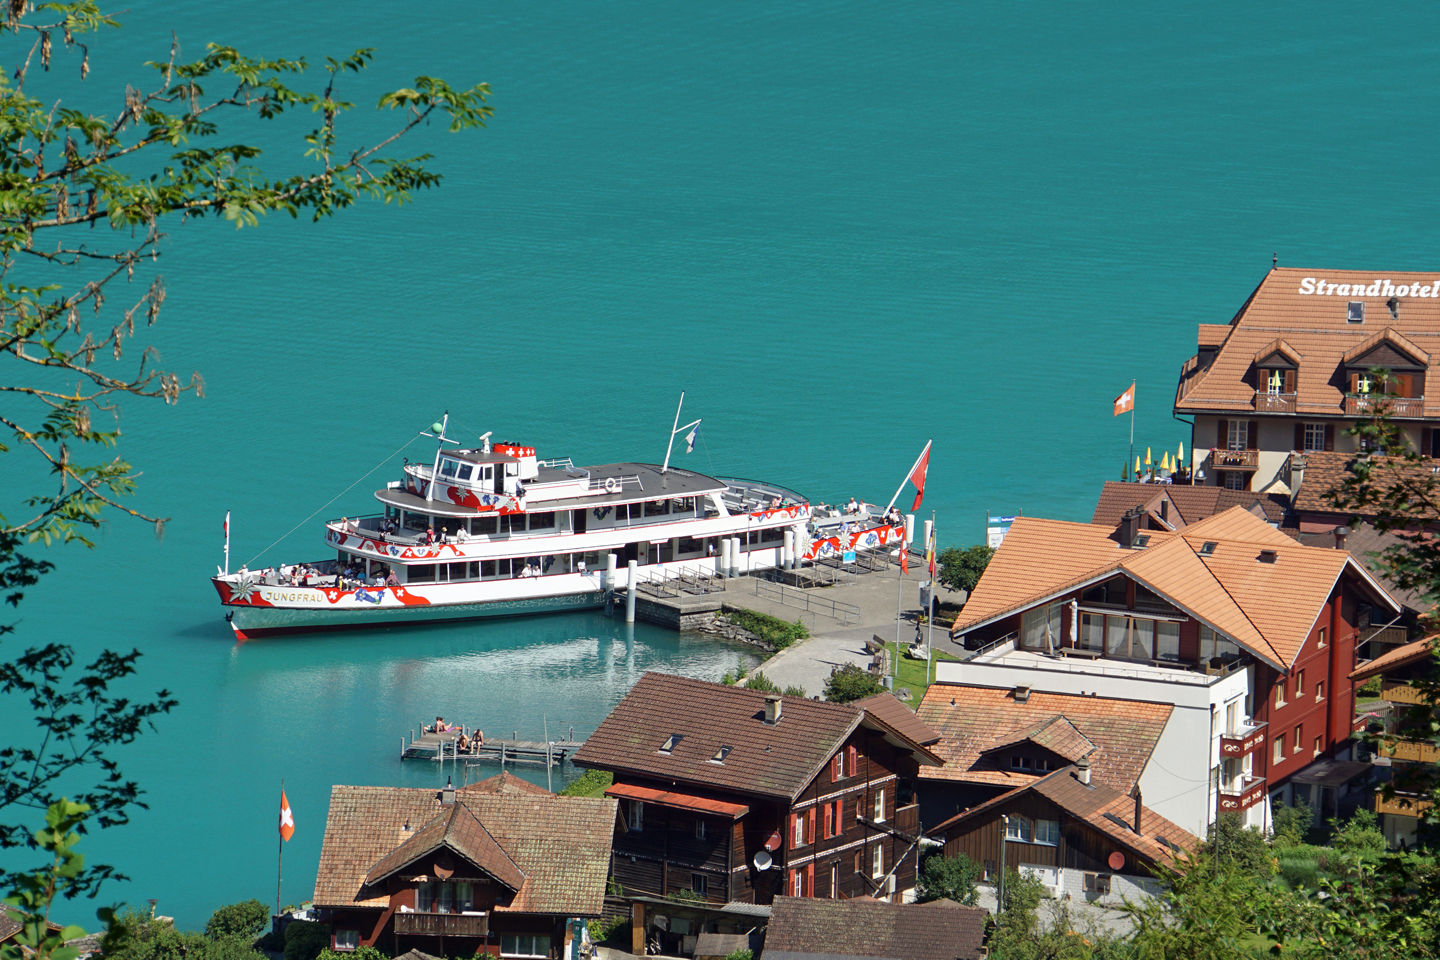 The MS Jungfrau at the boat landing of Iseltwald on Lake Brienz